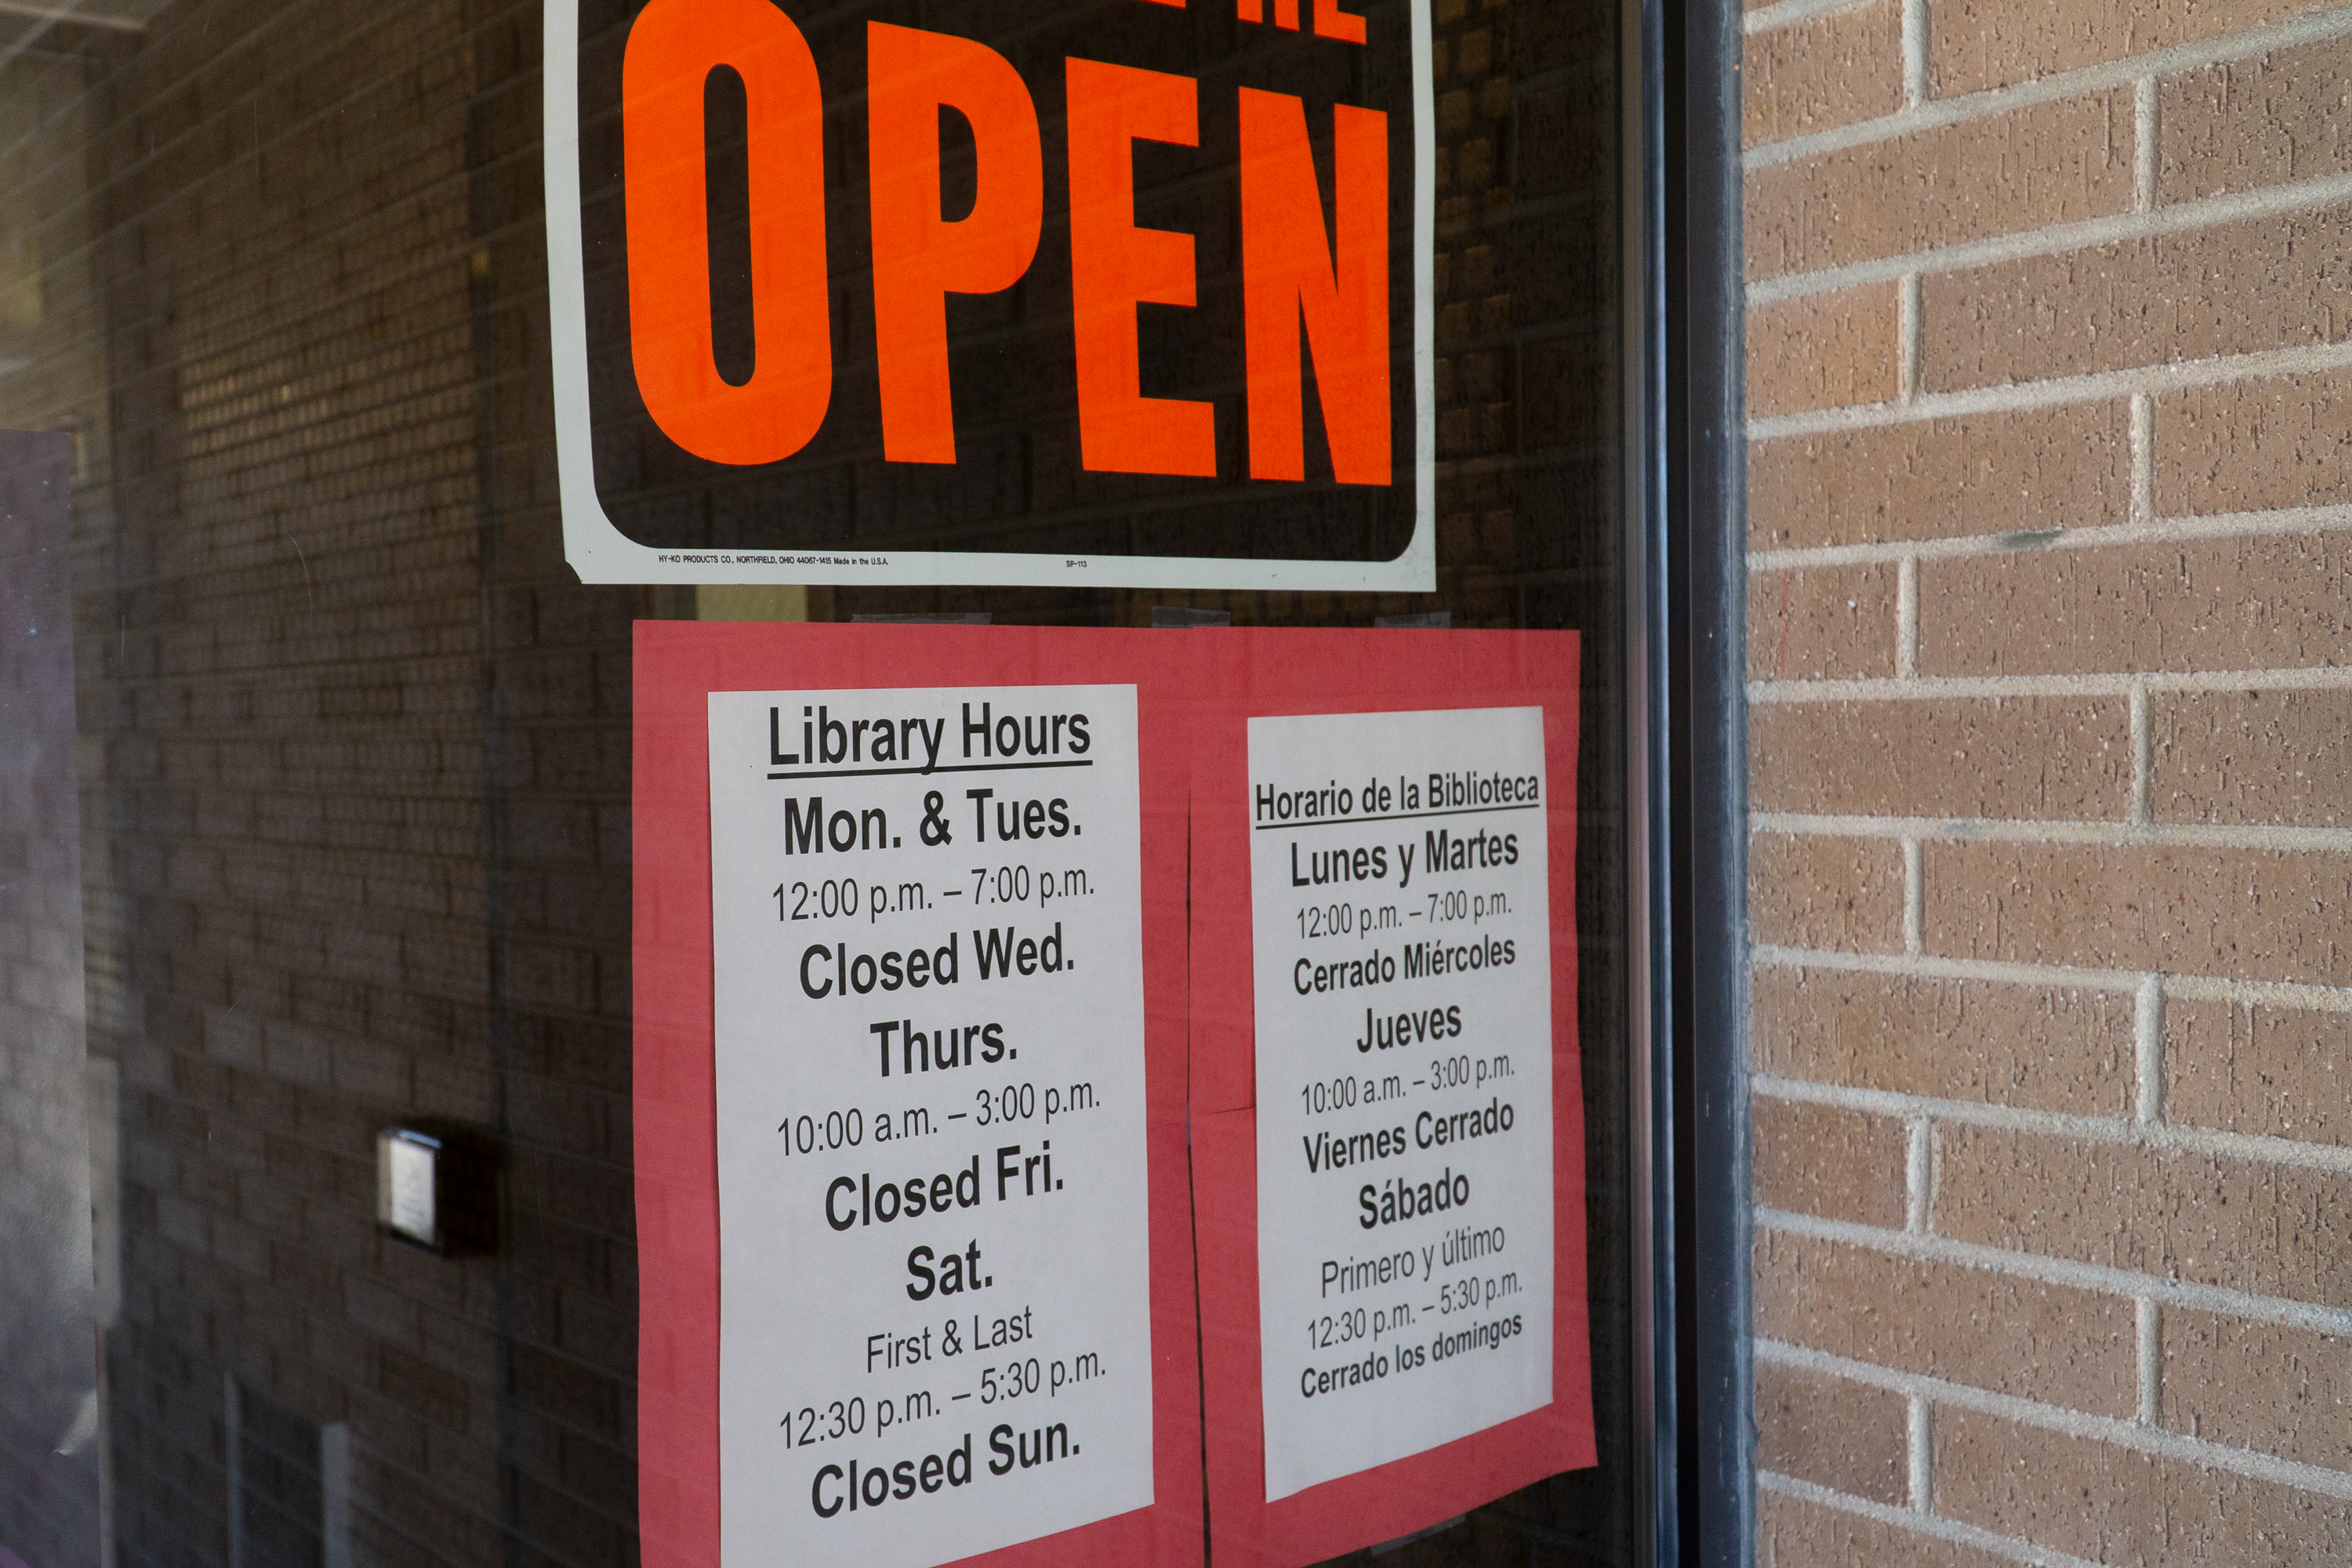 Hours posted outside of the Craig library branch on Aug. 13, 2019. Moffat County Libraries interim director Keisha Bickford said they had to cut hours by more than half after funding cuts.